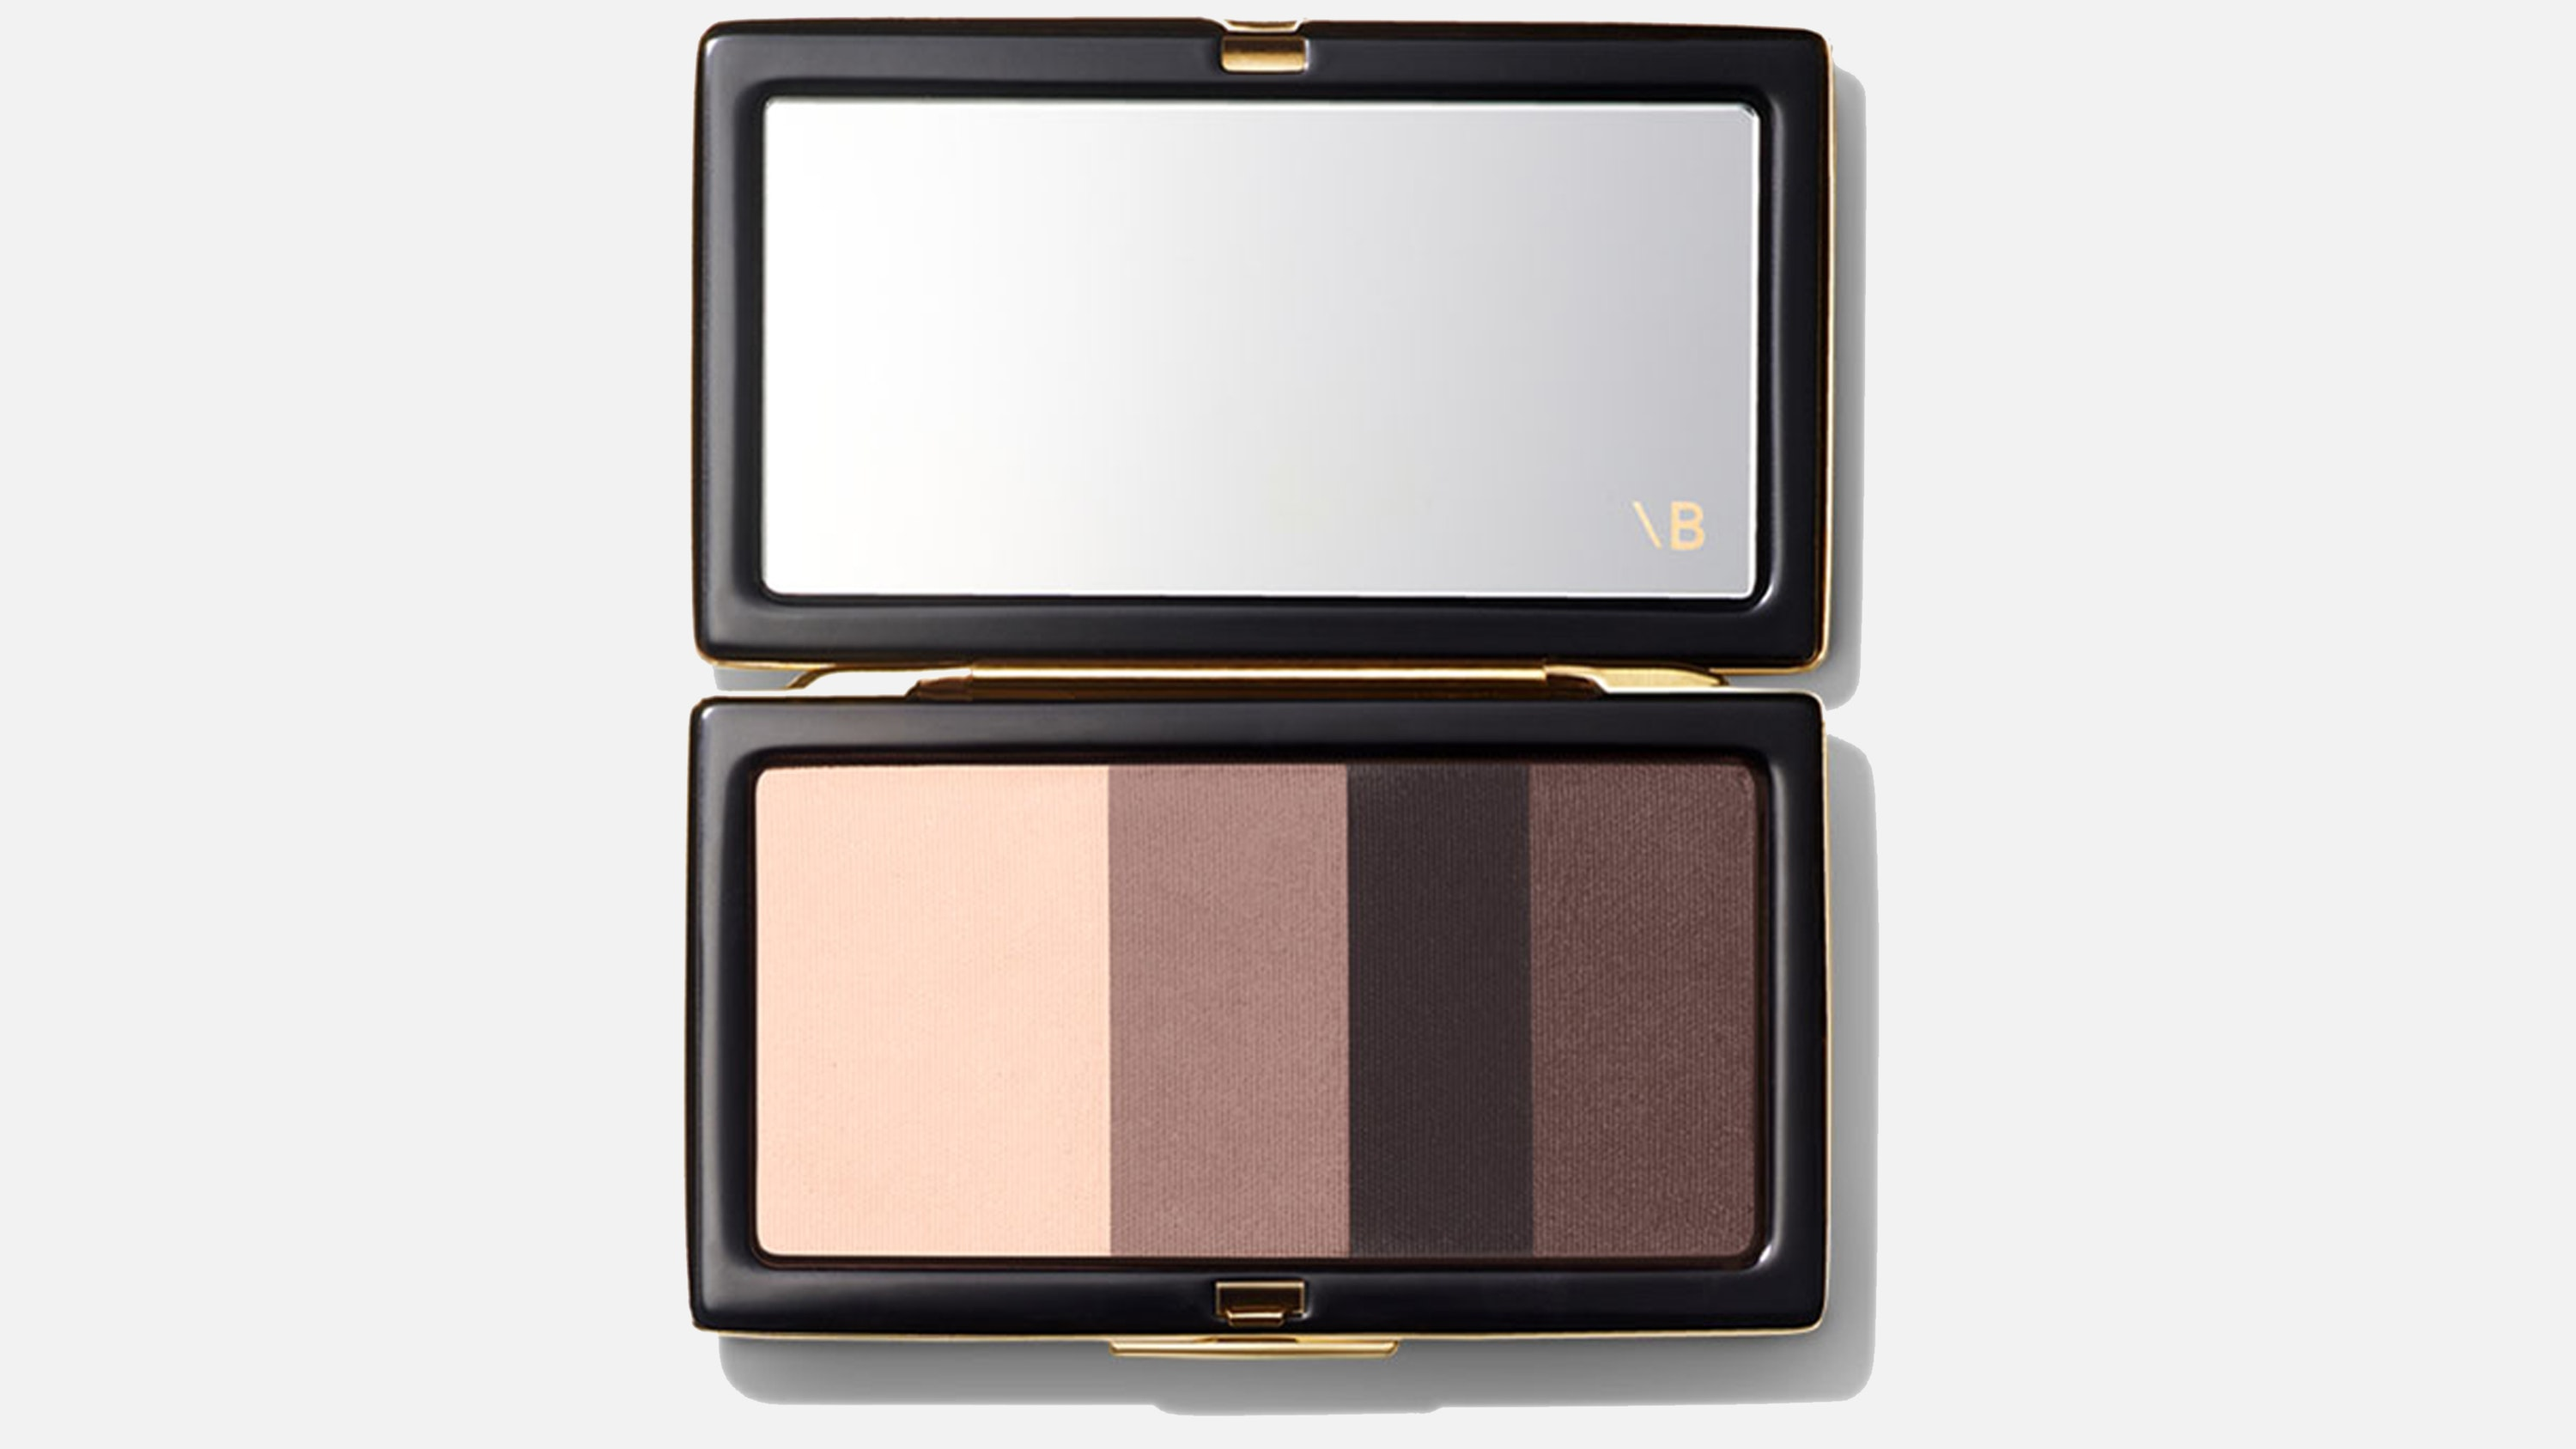 Victoria Beckham Beauty Smoky Eye Brick in Tuxedo